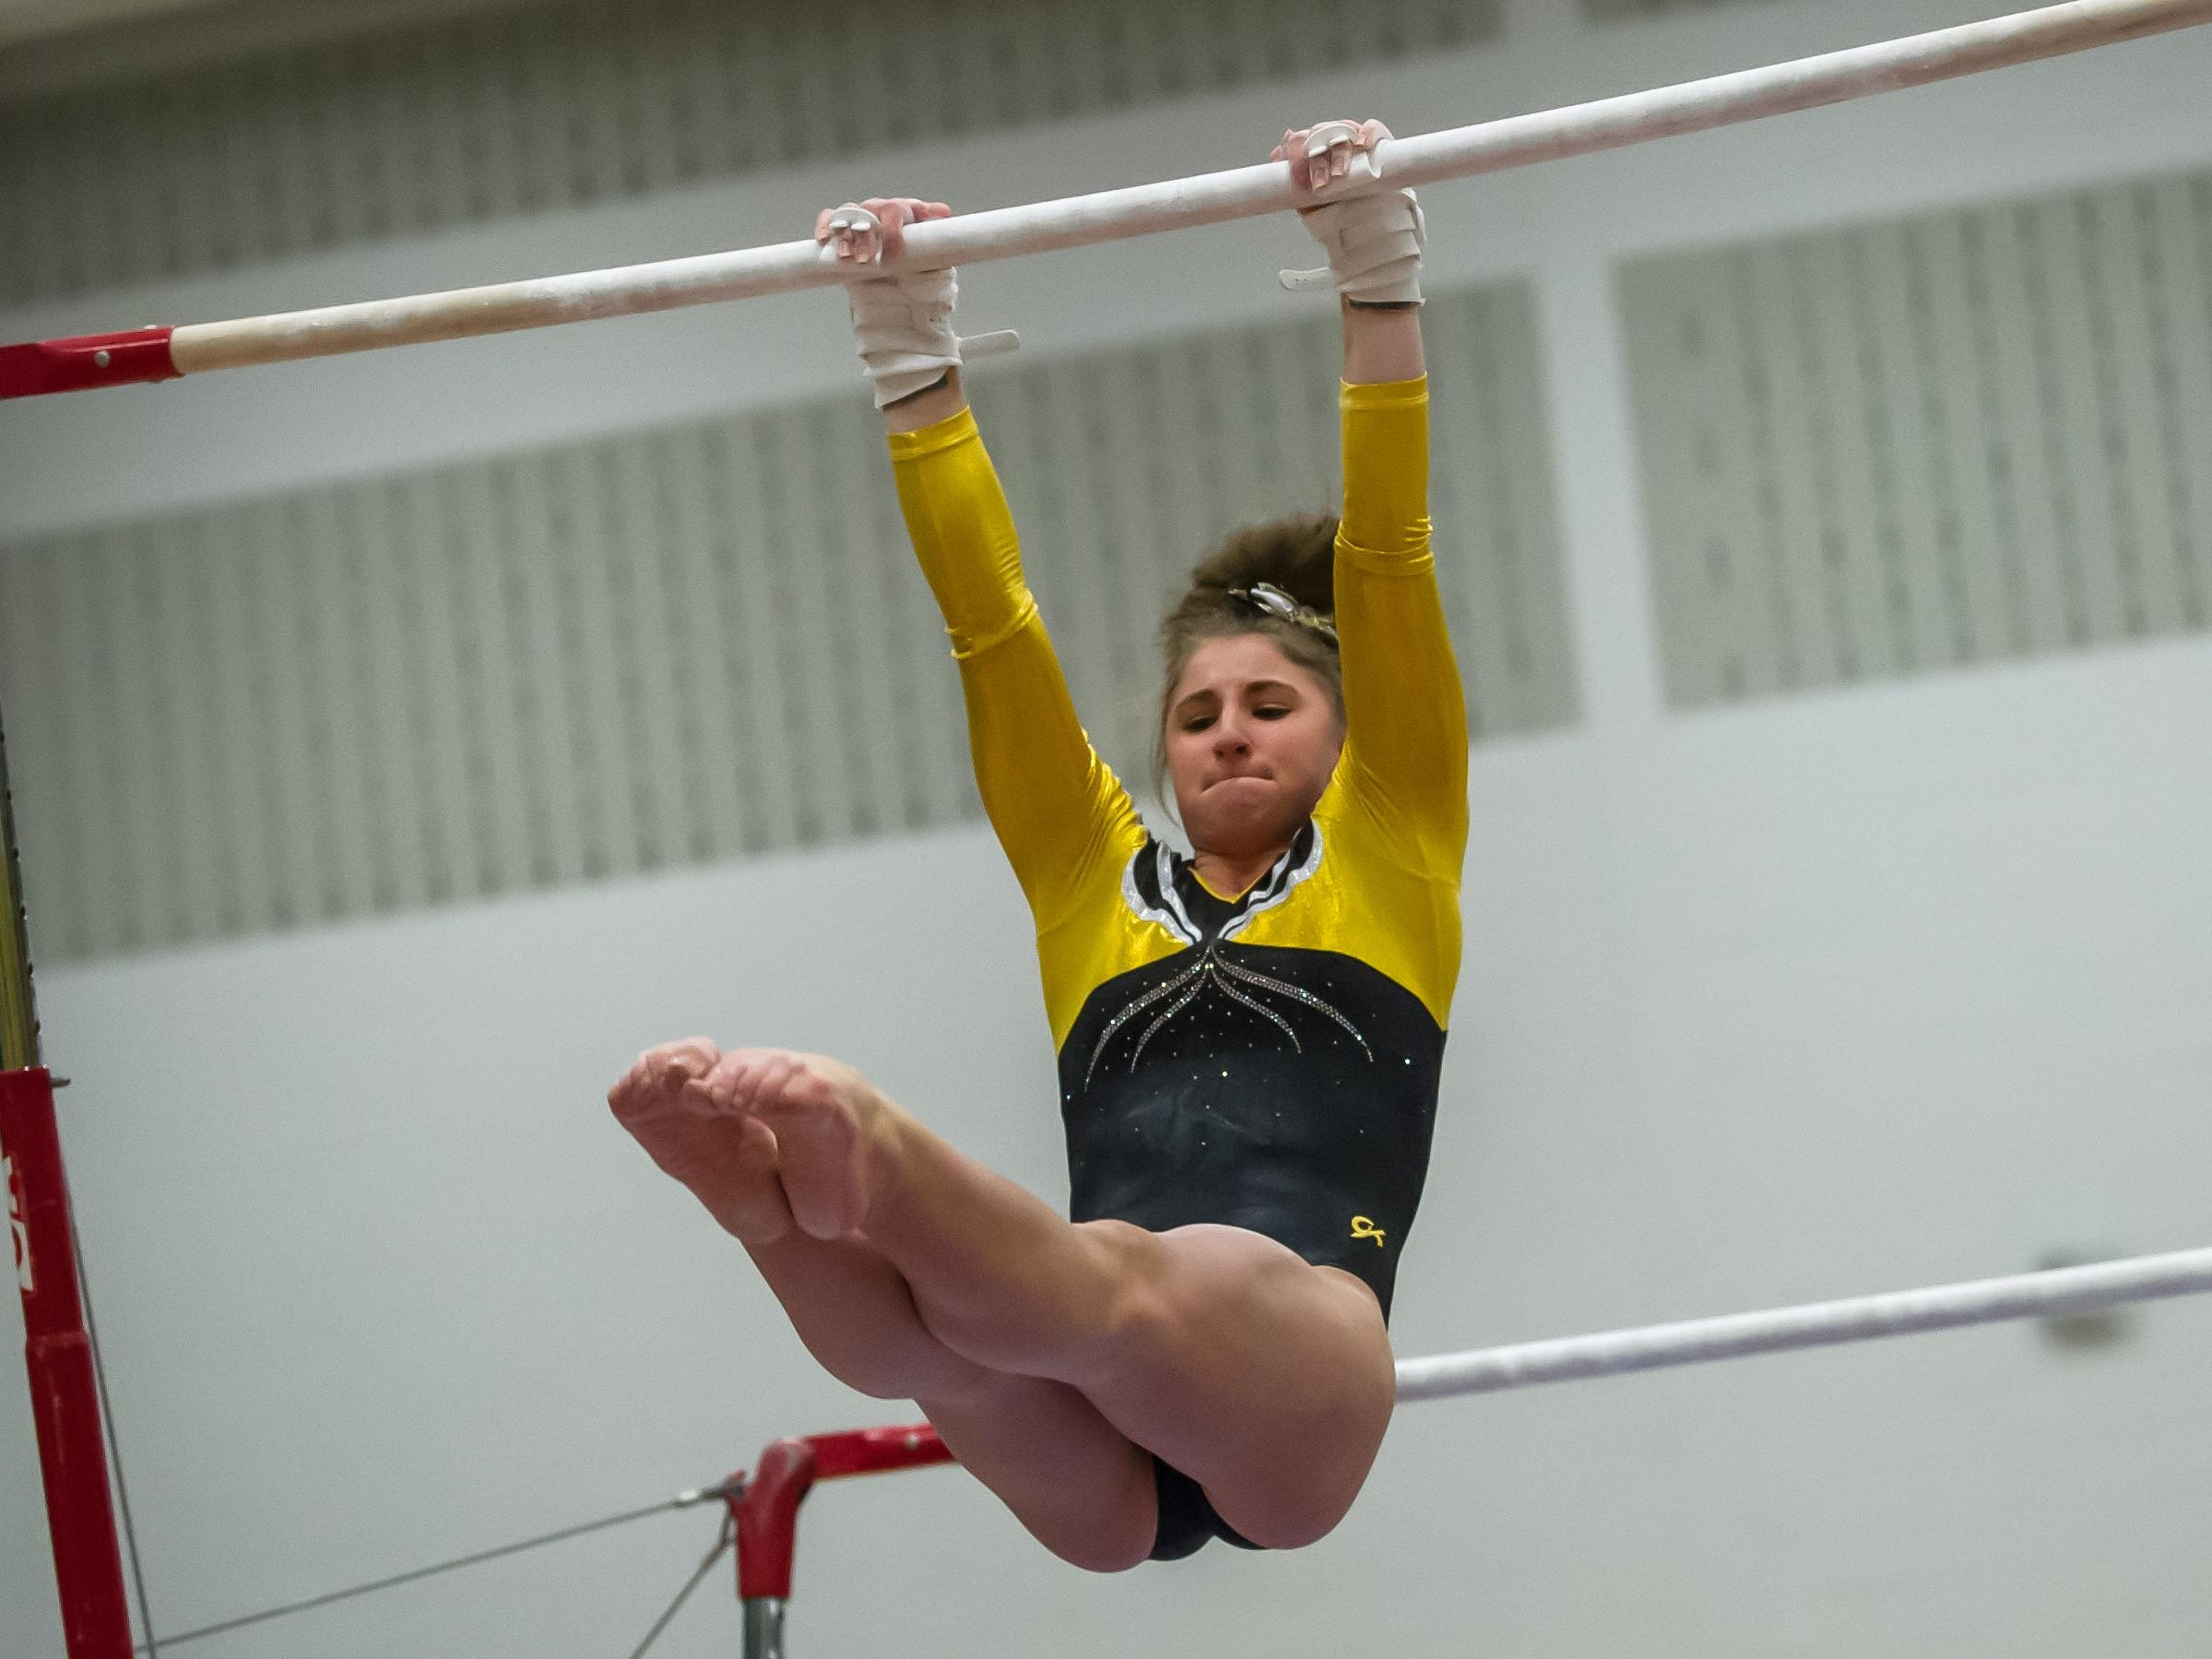 St. John Vianney's Kristen Politz competes on the bars in the NJSIAA Gymnastics state individual championship at Montgomery High School on Saturday Nov. 14, 2015. Photo by Jeff Granit